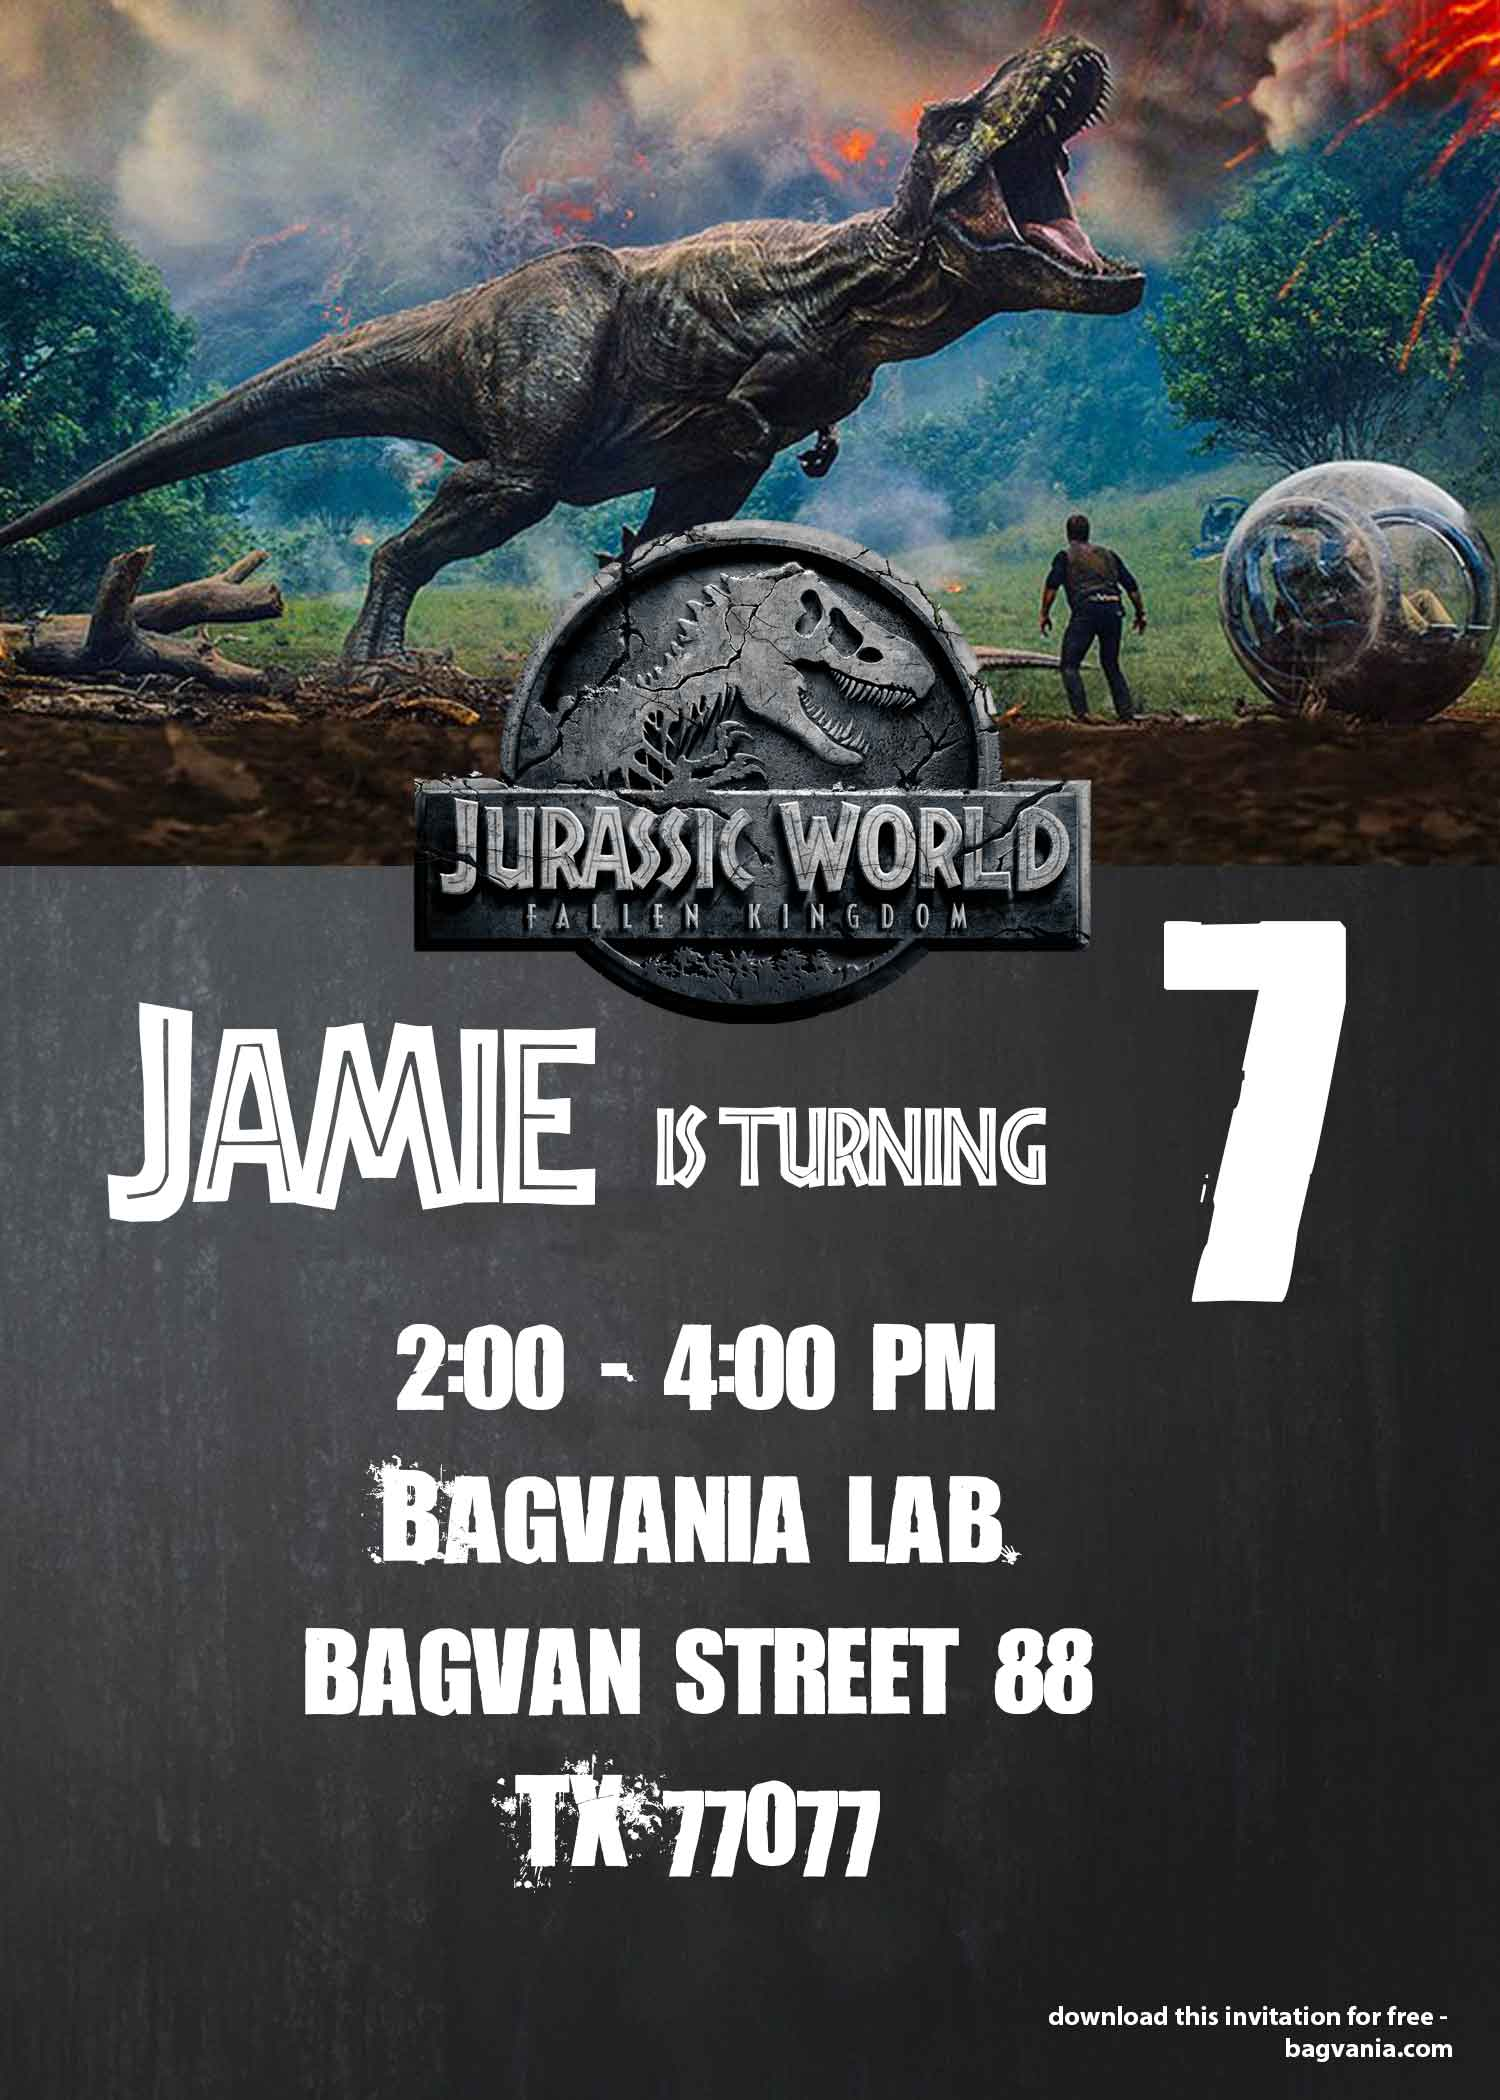 Jurassic world fallen kingdom birthday party ideas free the first thing i did was to check out drevio we download our free jurassic park birthday invitation template you can download it below maxwellsz